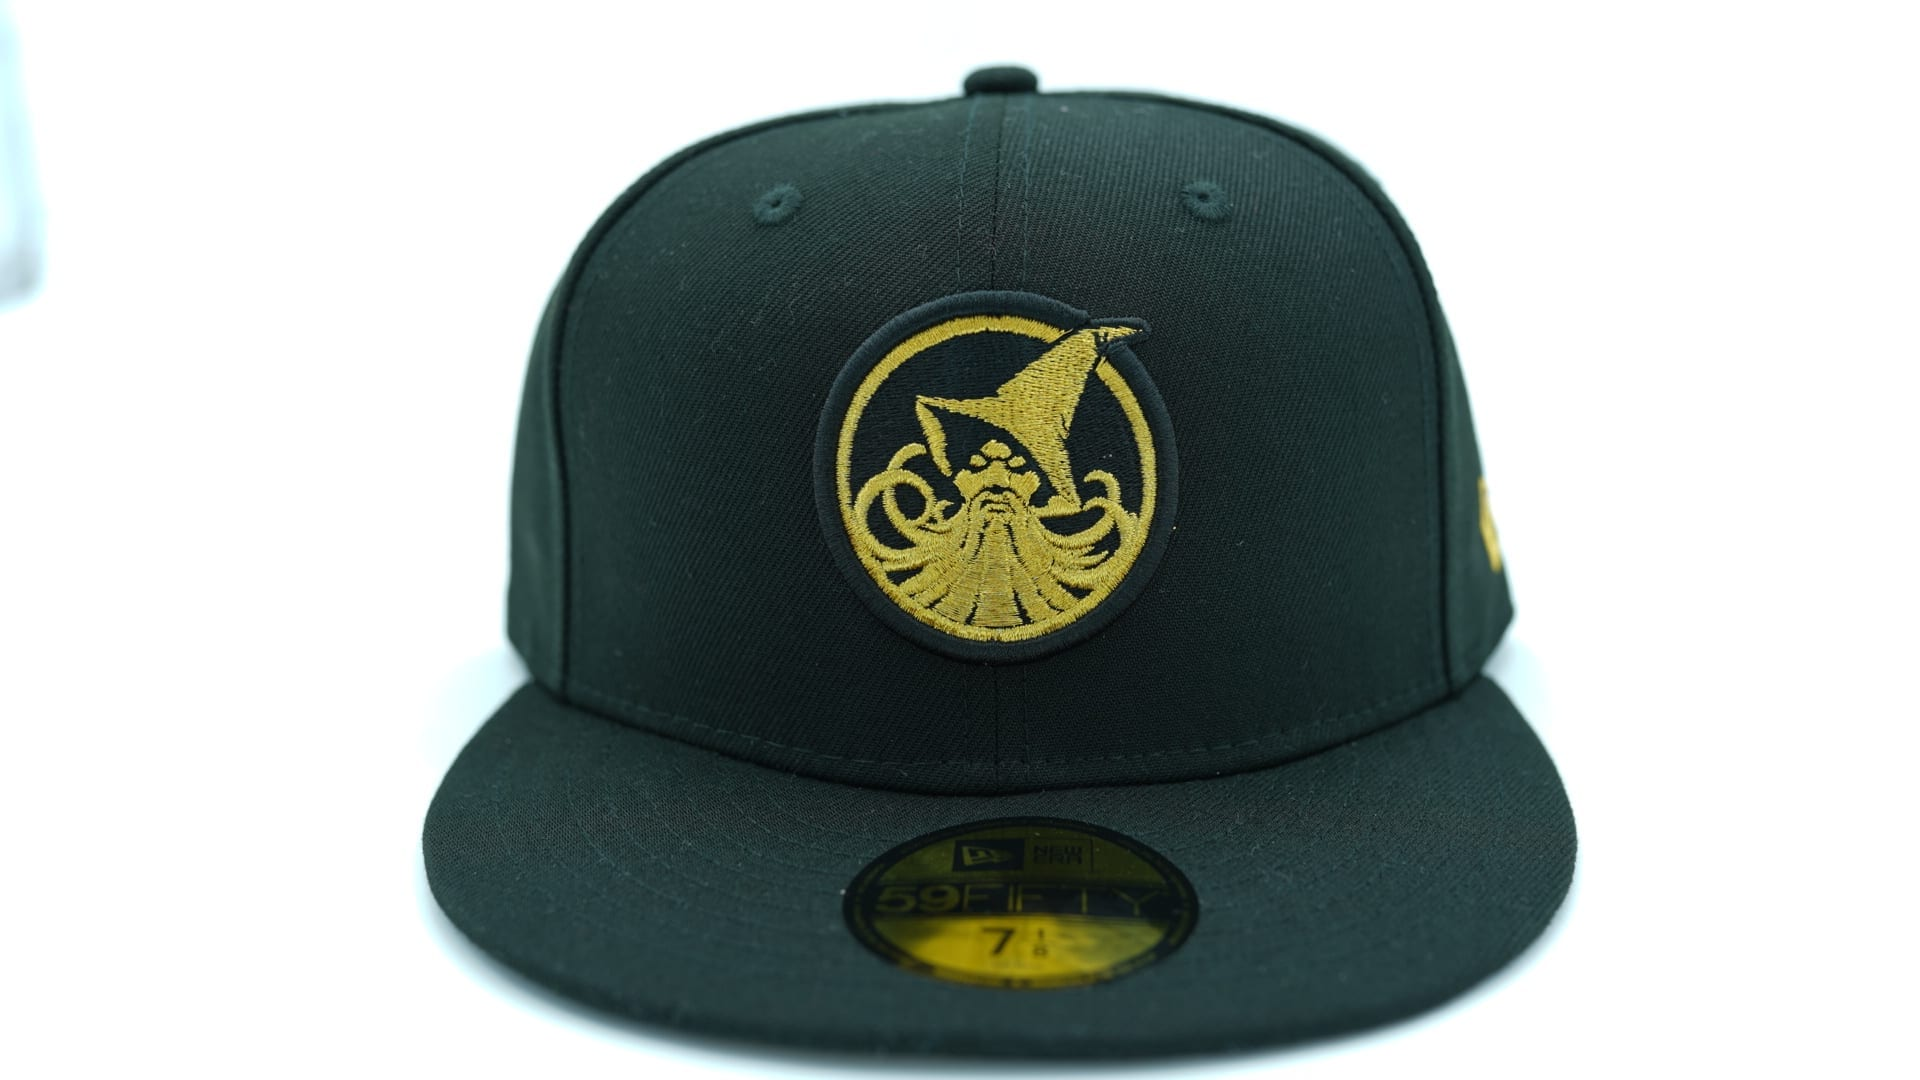 HALL OF FAME  NEW ERA Fall '13 59Fifty Fitted Baseball Cap Preview